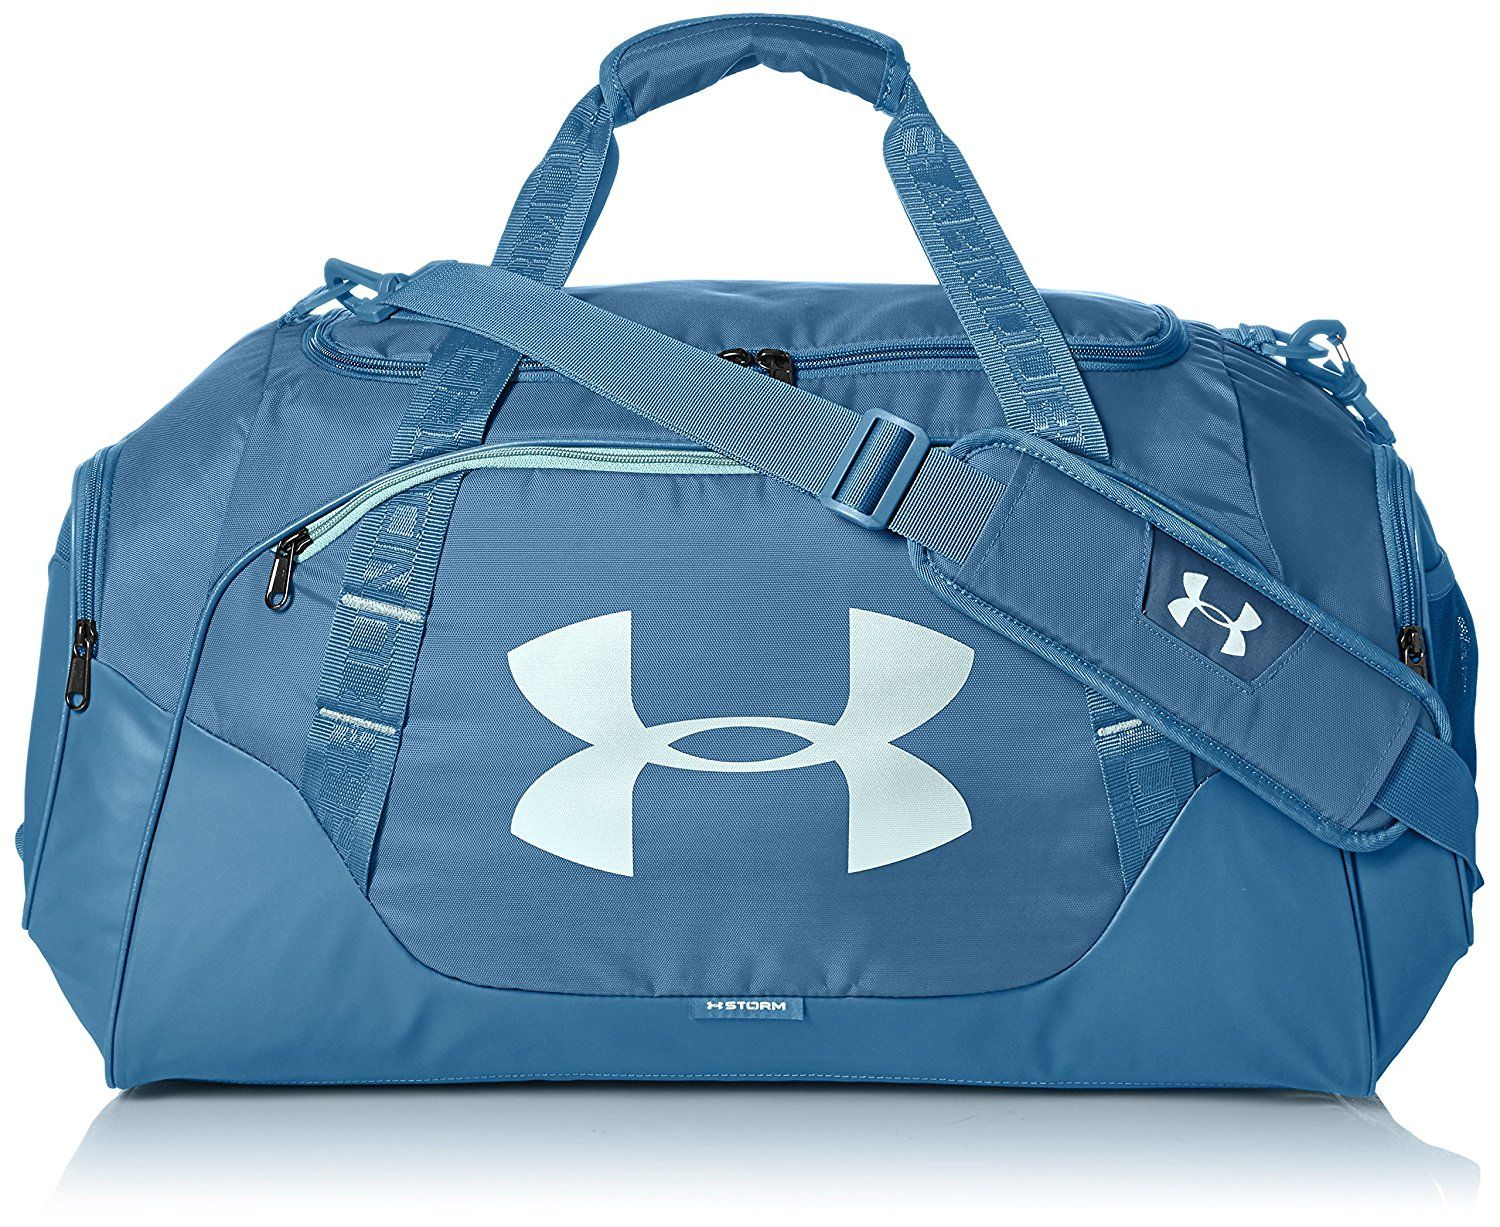 90d0a316b9 Amazon.com: Under Armour Undeniable 3.0 Duffle: Sports & Outdoors Stylish  Workout Bag | All Colors Available | 37$